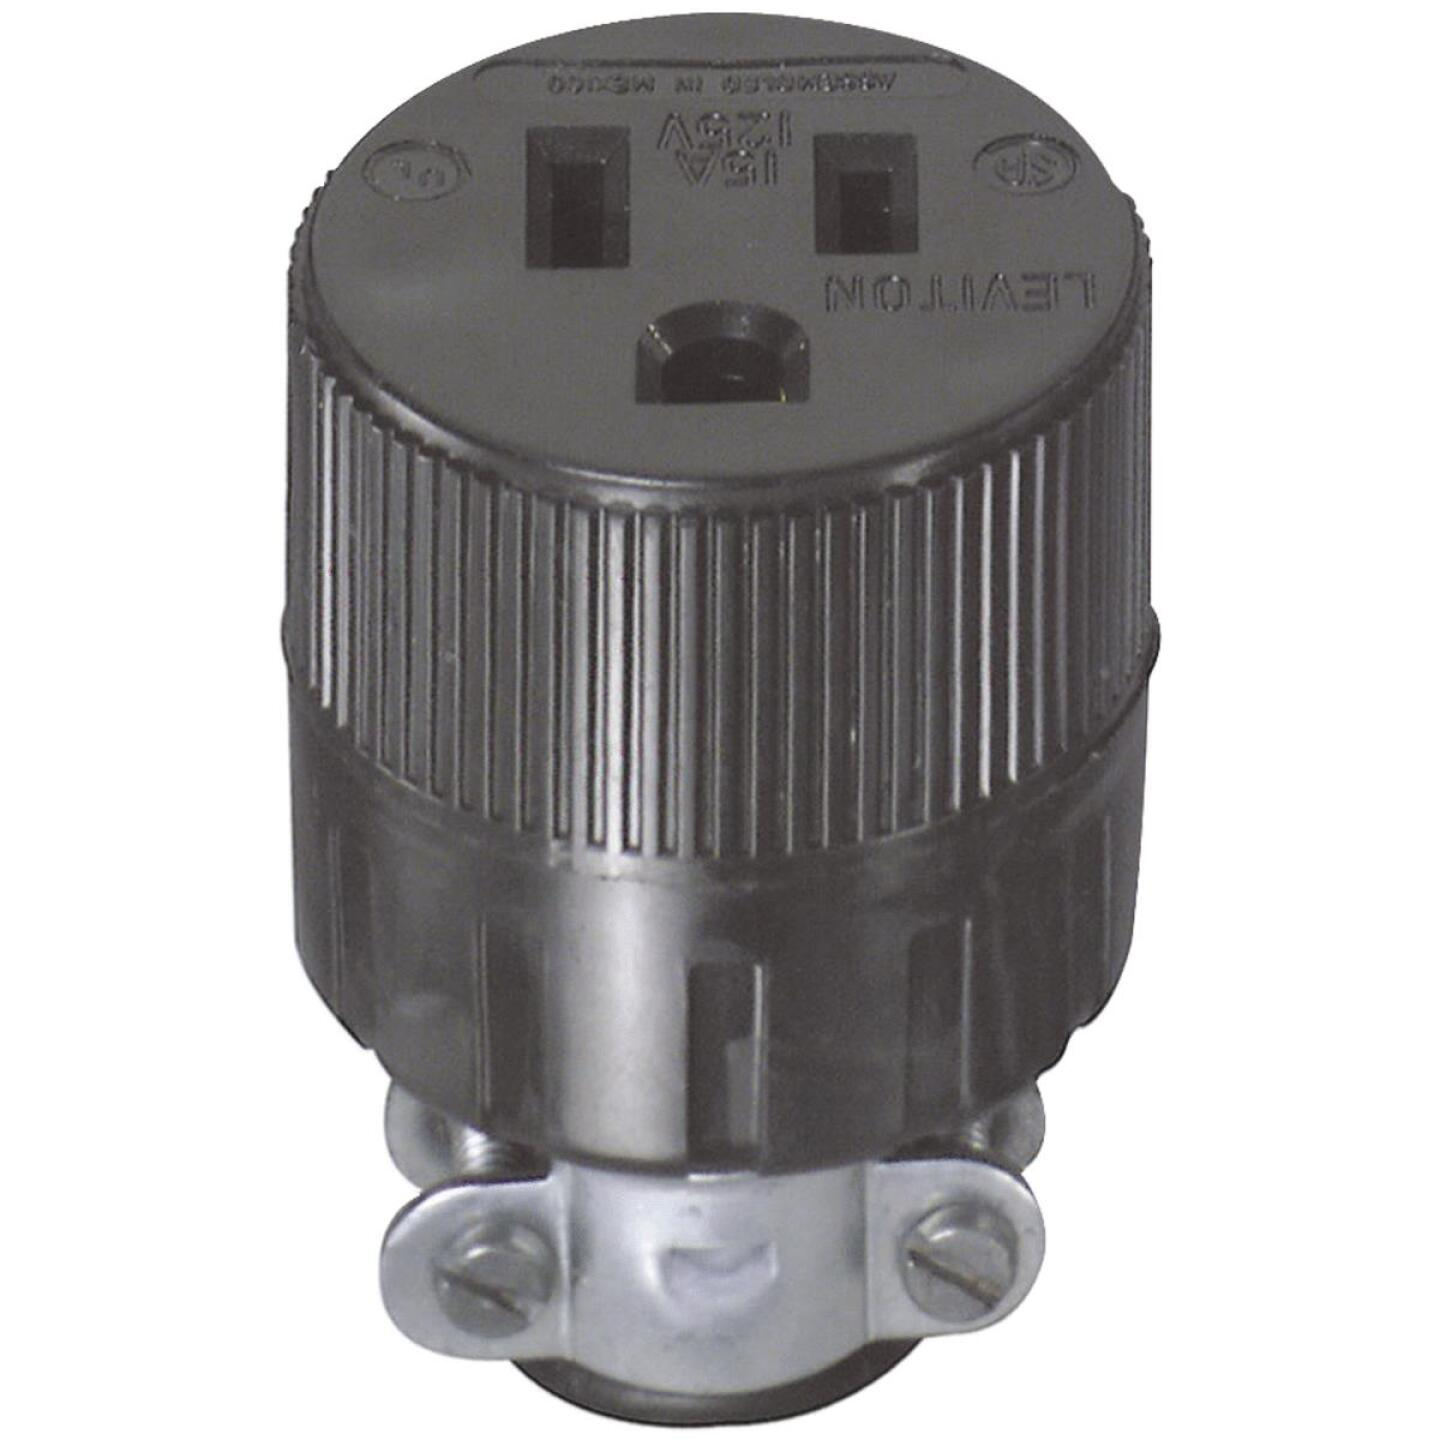 Do it 15A 125V 3-Wire 2-Pole Round Cord Connector Image 3